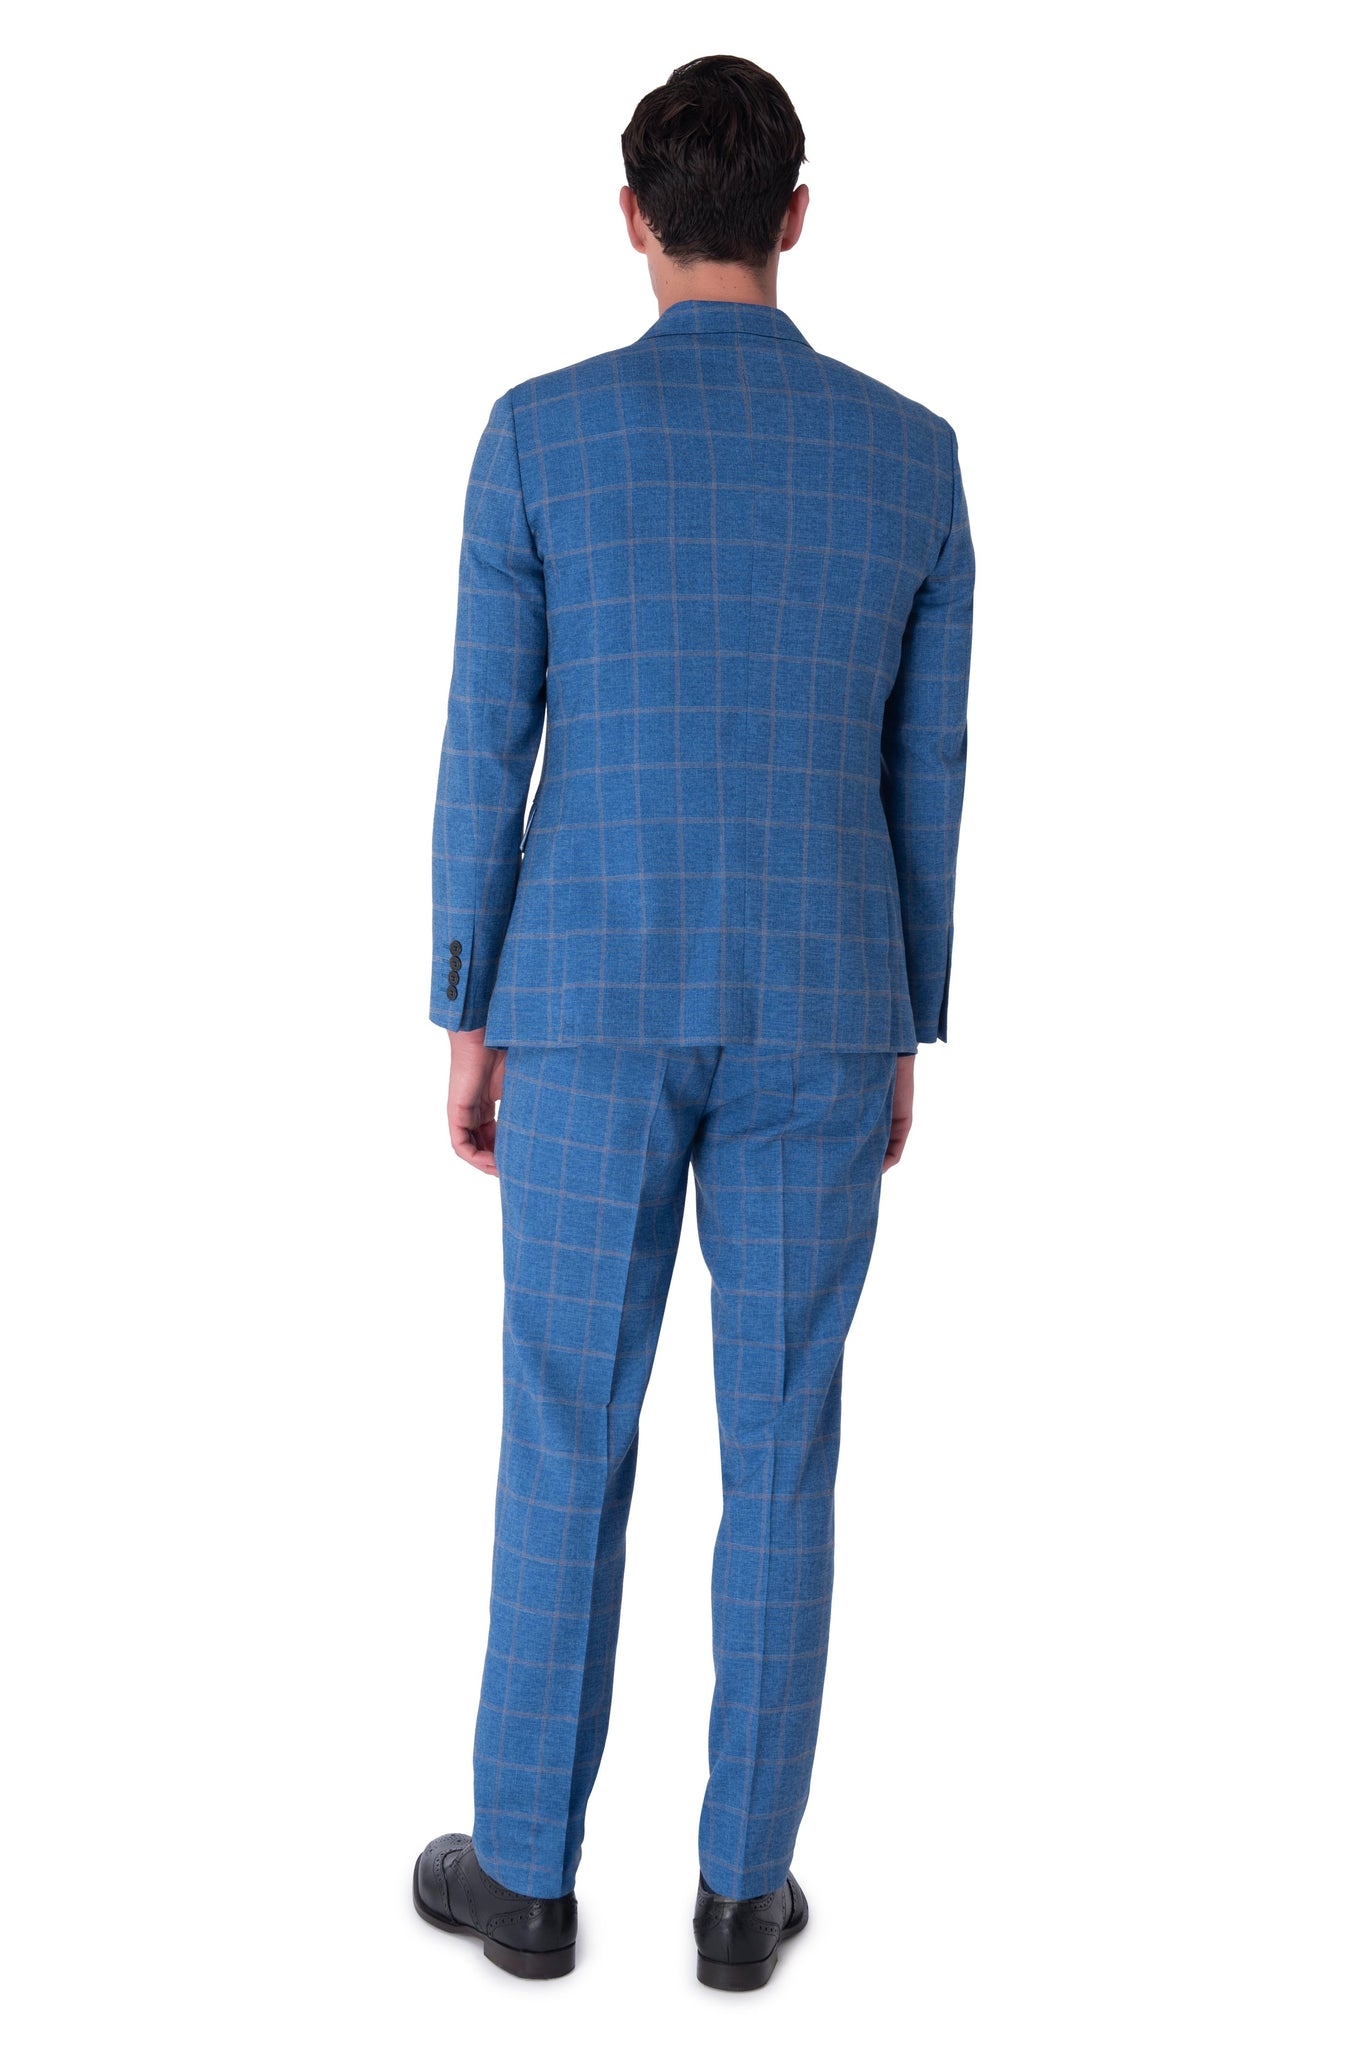 Back of WILLIAM Blue Check Double Breasted Suit